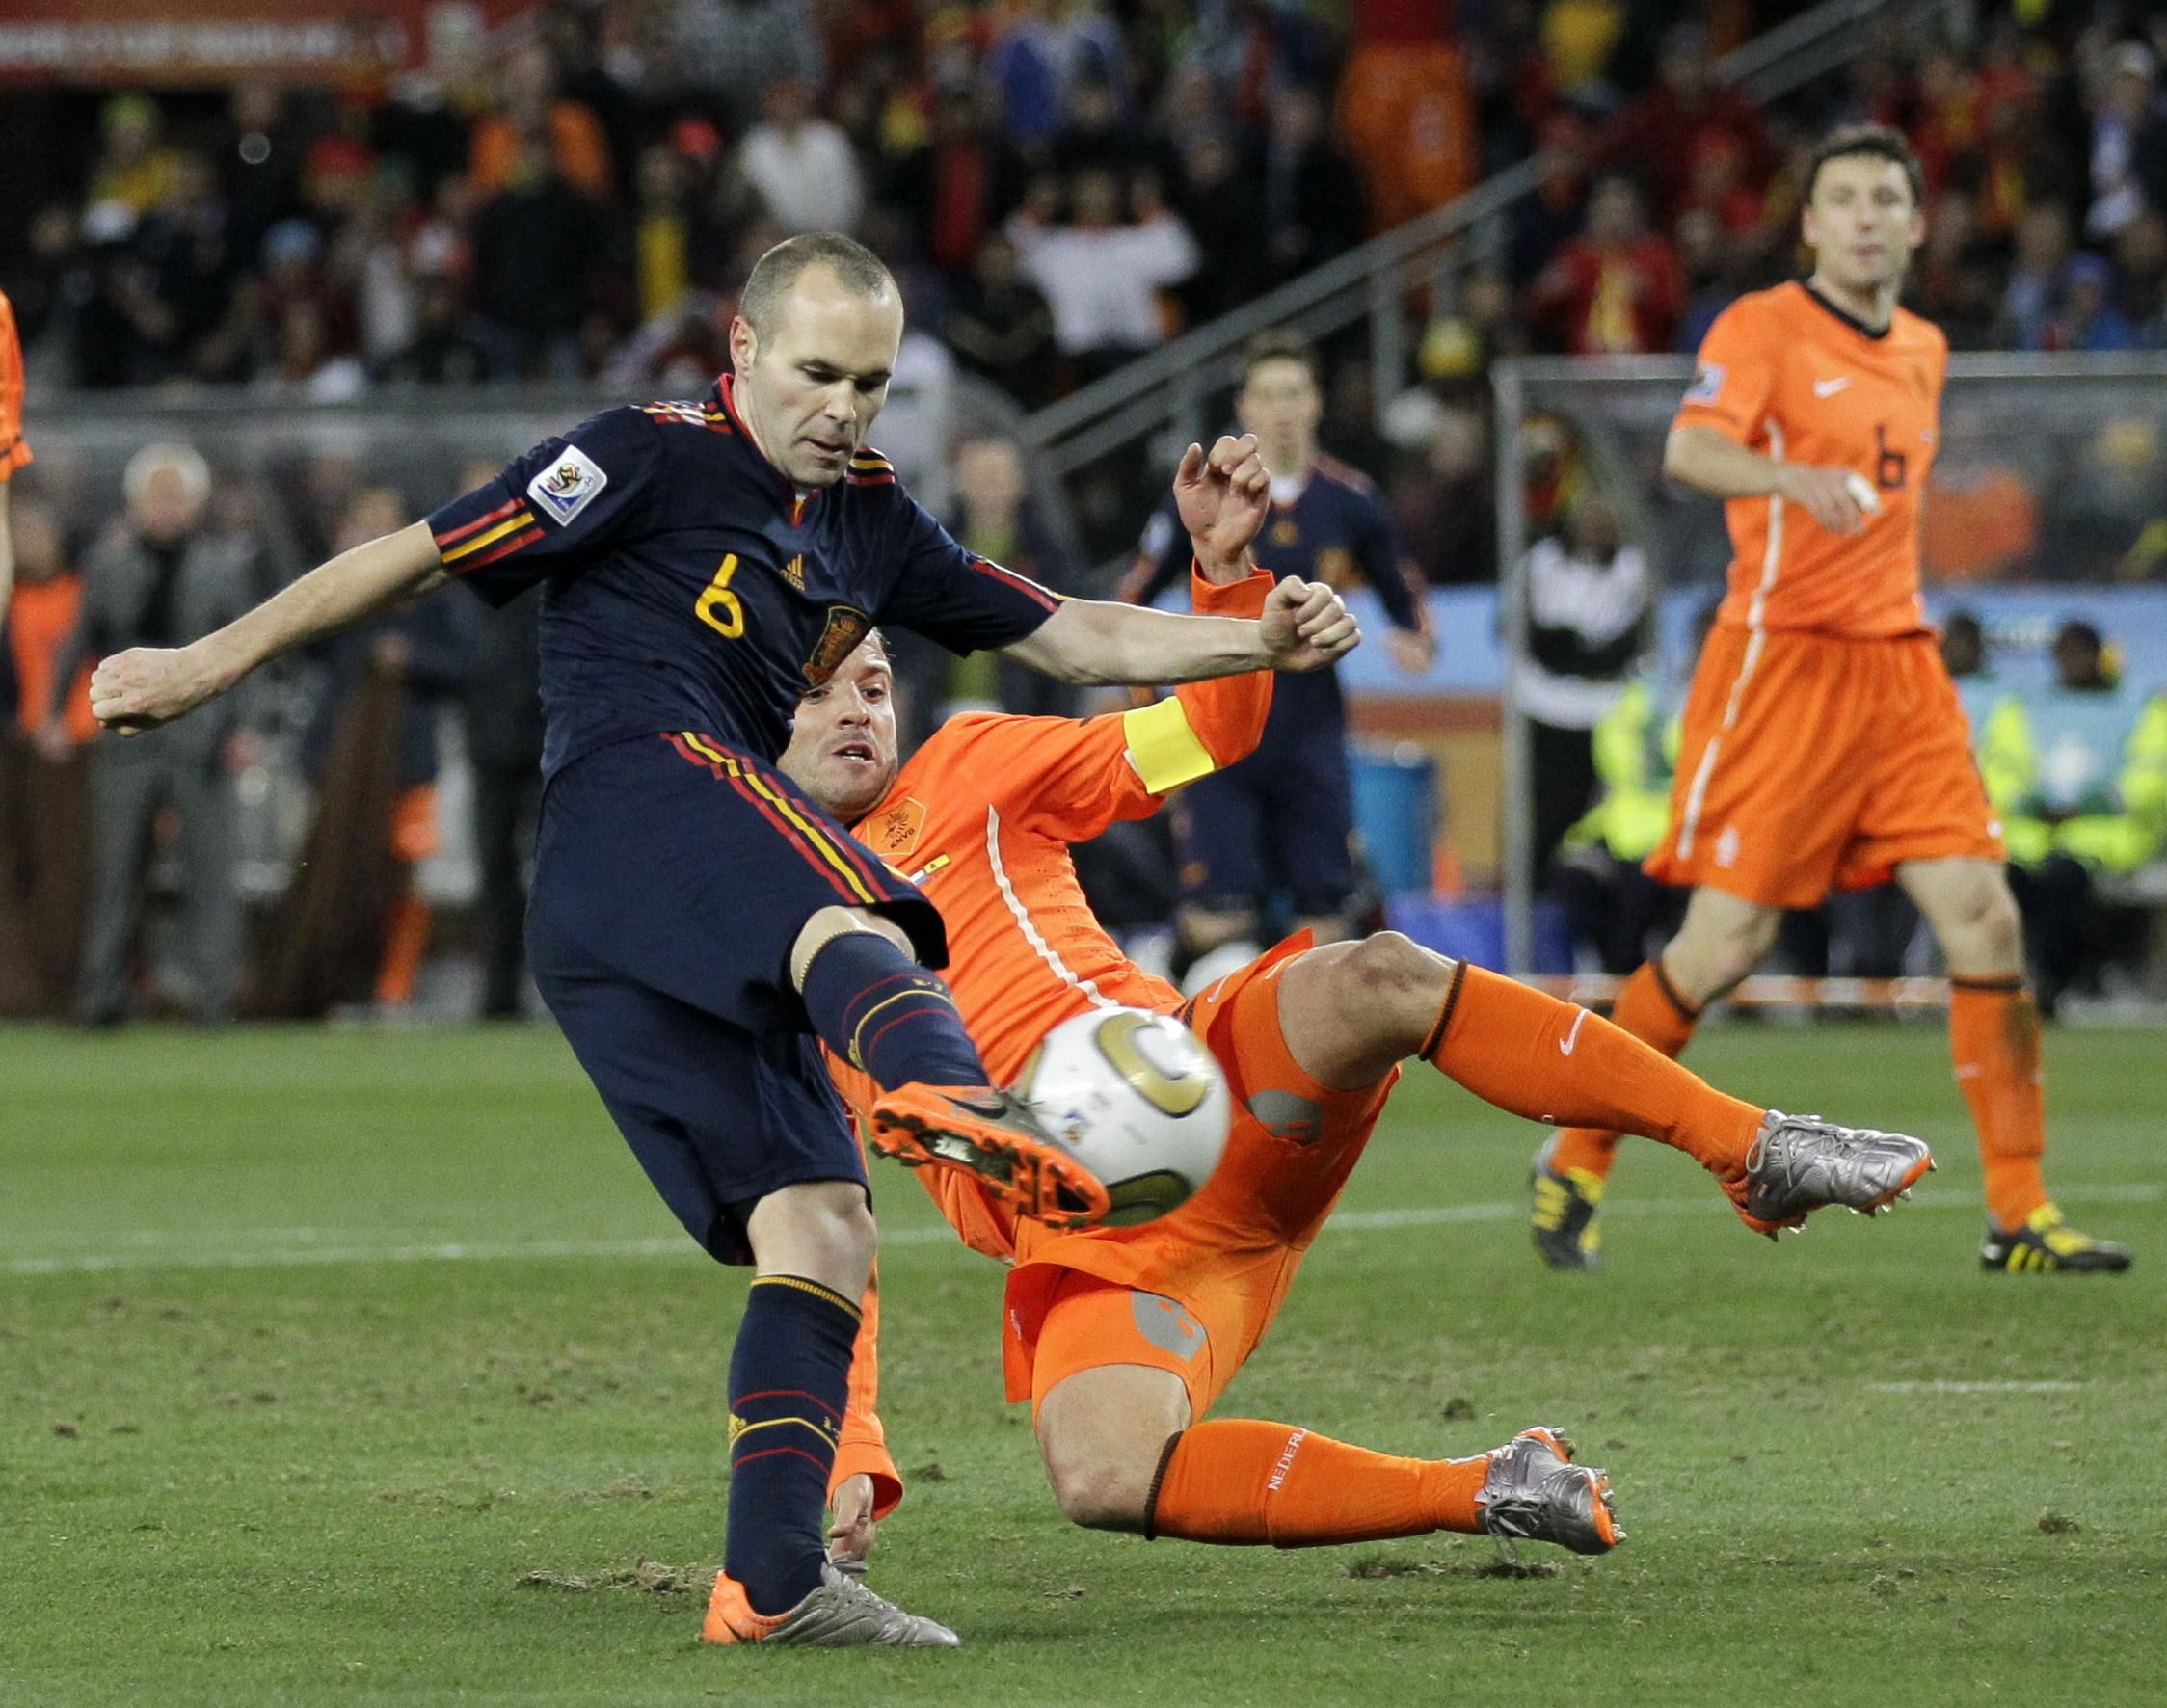 Spain S Andres Iniesta Scoring The Winner In The 2010 World Cup Final Spain Open Their World Cup 2014 With A Rematch Against The Dutch Can Don Andres Do It A